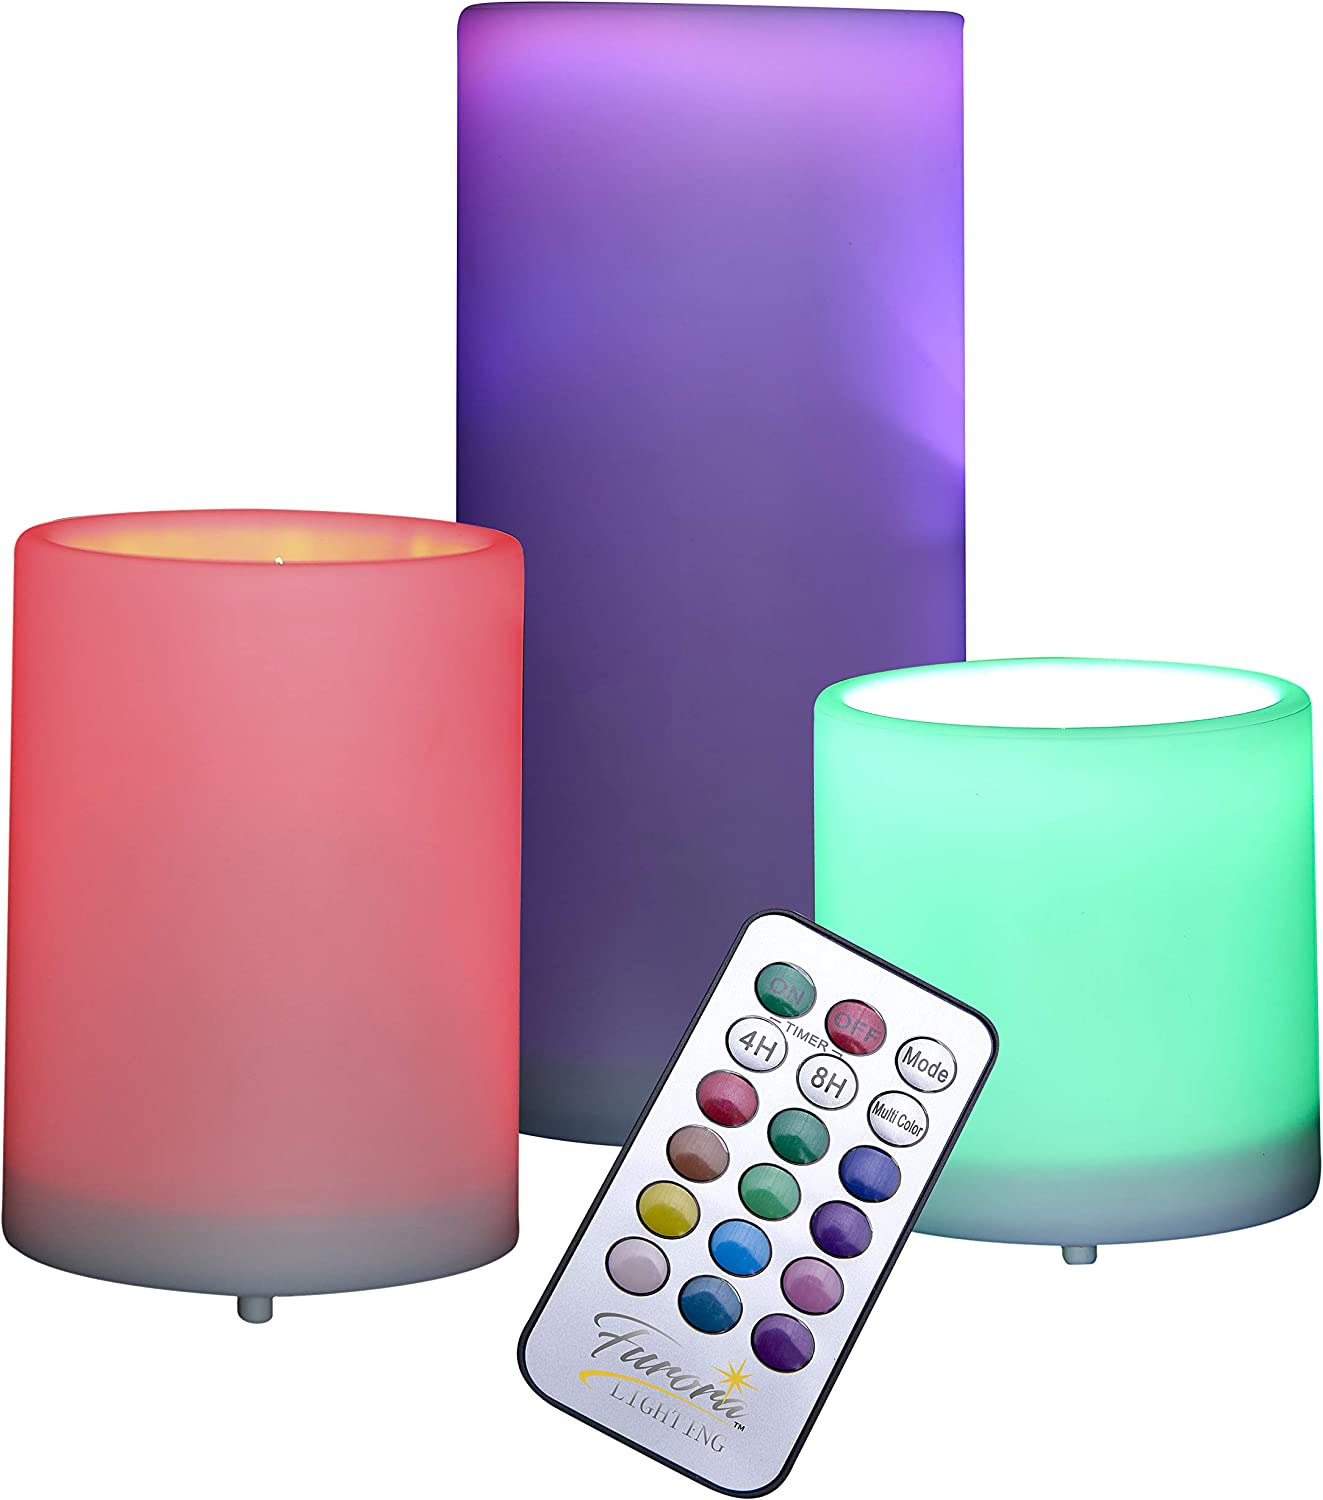 Furora LIGHTING Flameless LED Pillar Candles Battery Operated Multicolor Pillars with Flickering Flame, 18-Key Remote Control and Timer Featured - Pack of 3